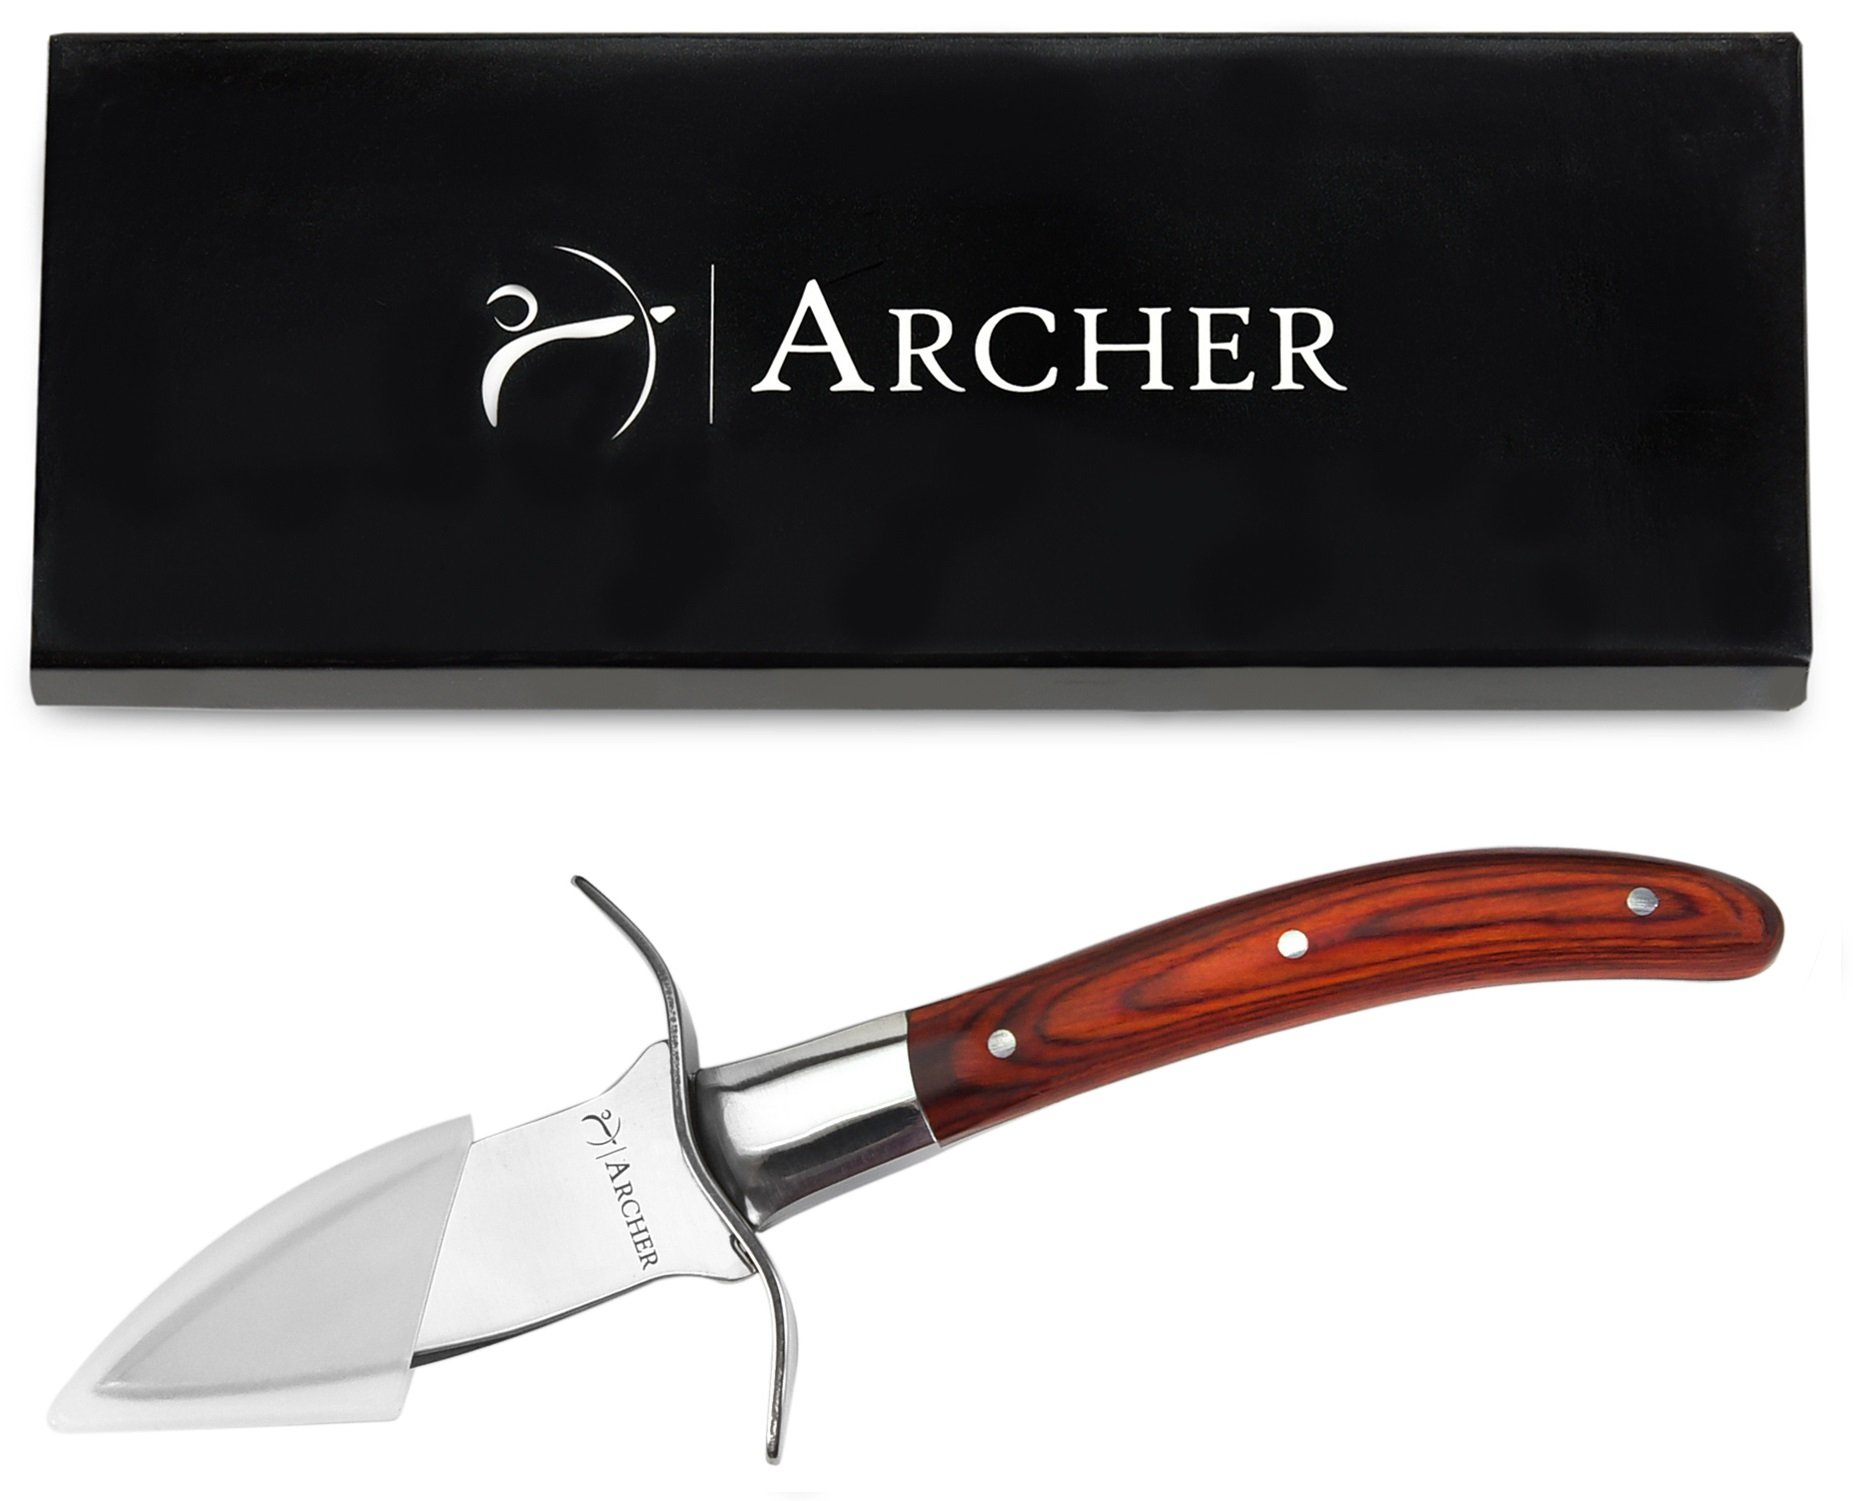 Oyster Knife by Archer - Premium Oyster Shucking Knife in Gift Box with Pakka Wood Handle, Mirror Finish Full Tang Blade, Hand-guard - Beautifully Made Compact Design Oyster Shell Shucker/Opener